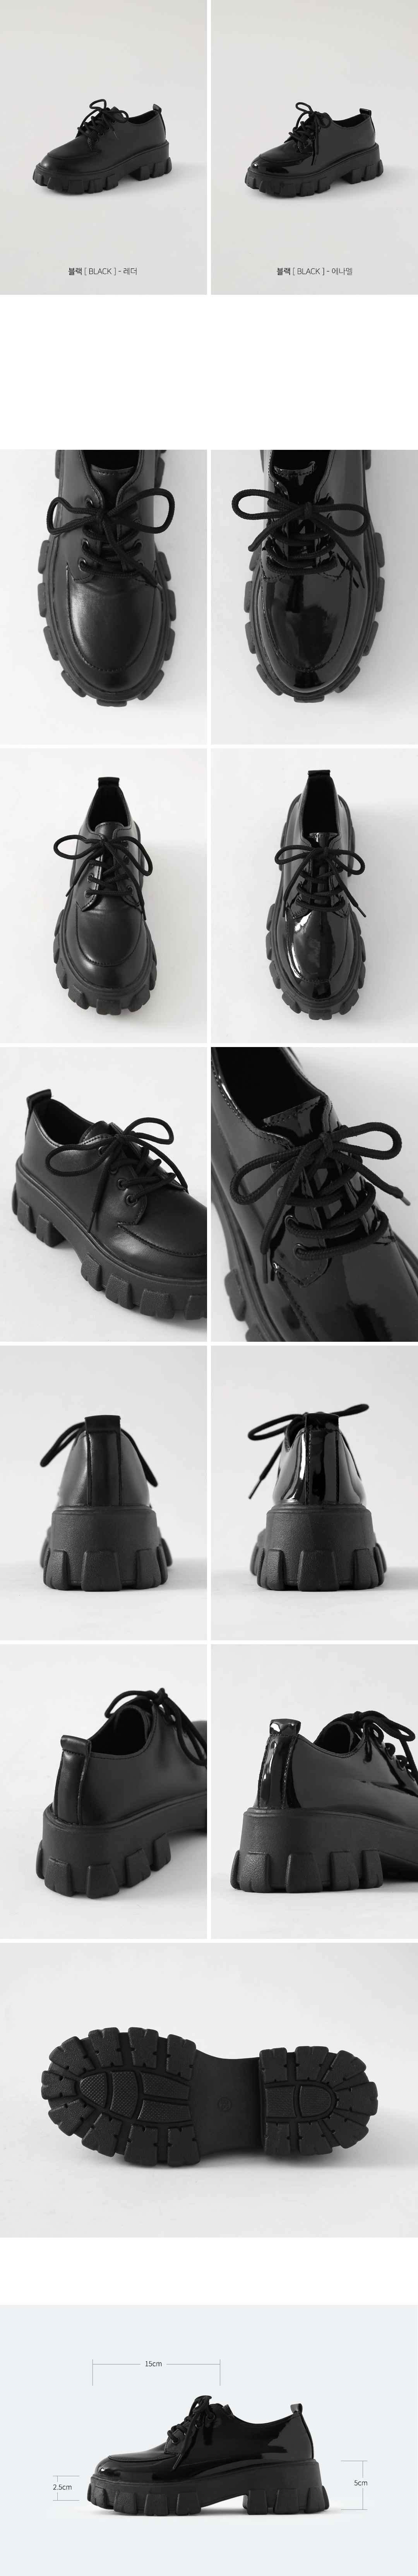 Hasse height lace-up loafers